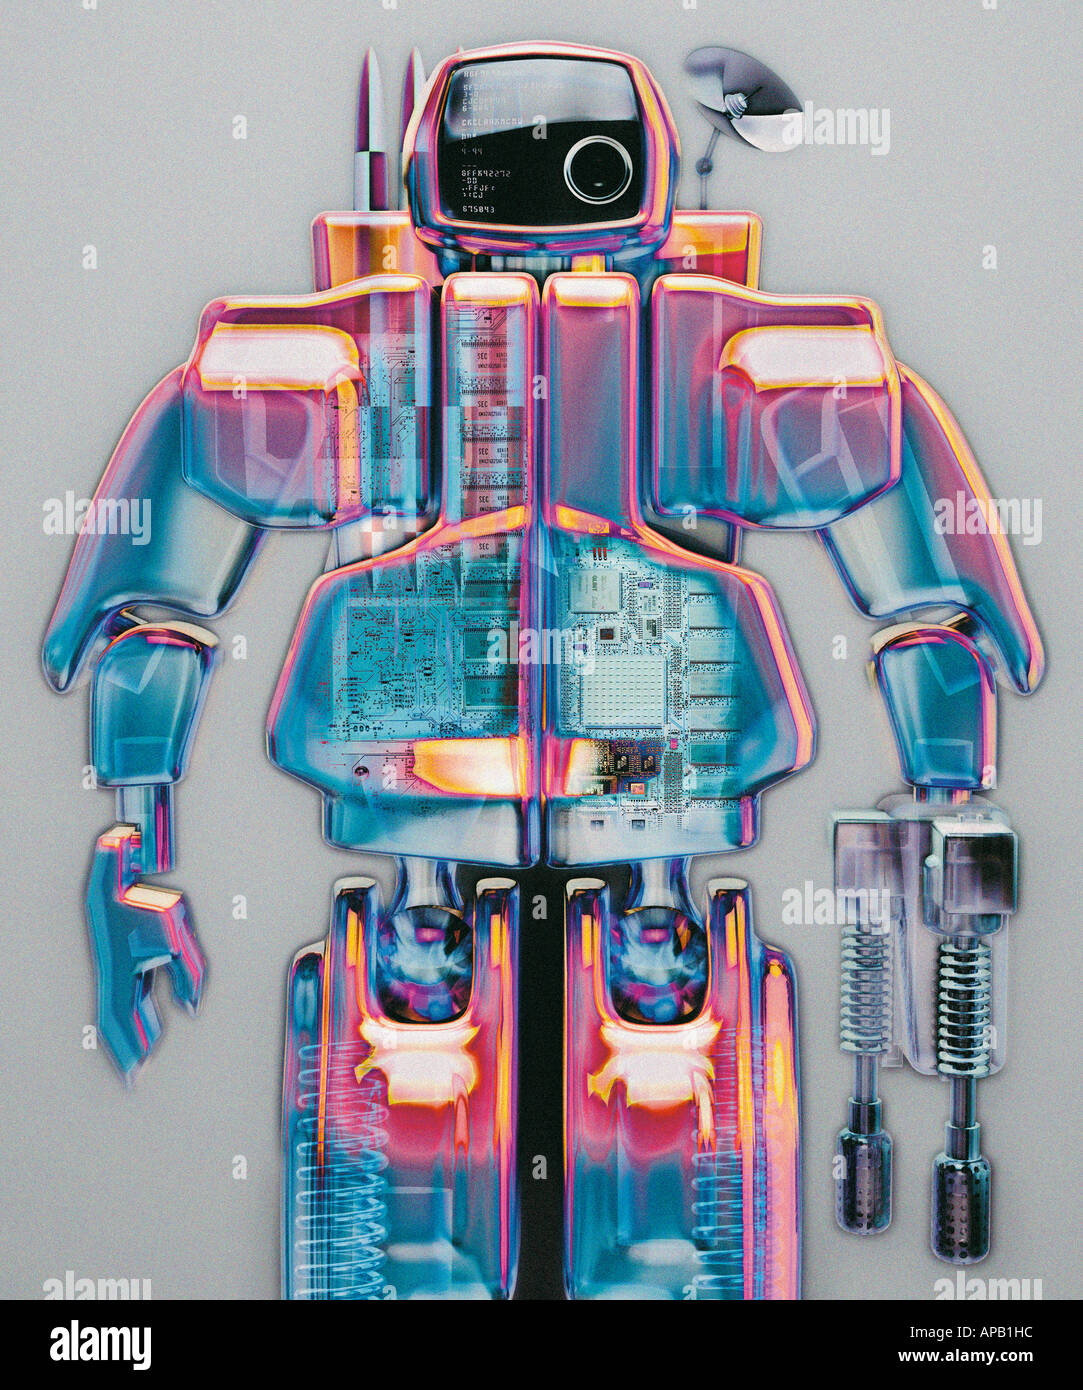 Computer generated image of a pink and blue robot - Stock Image